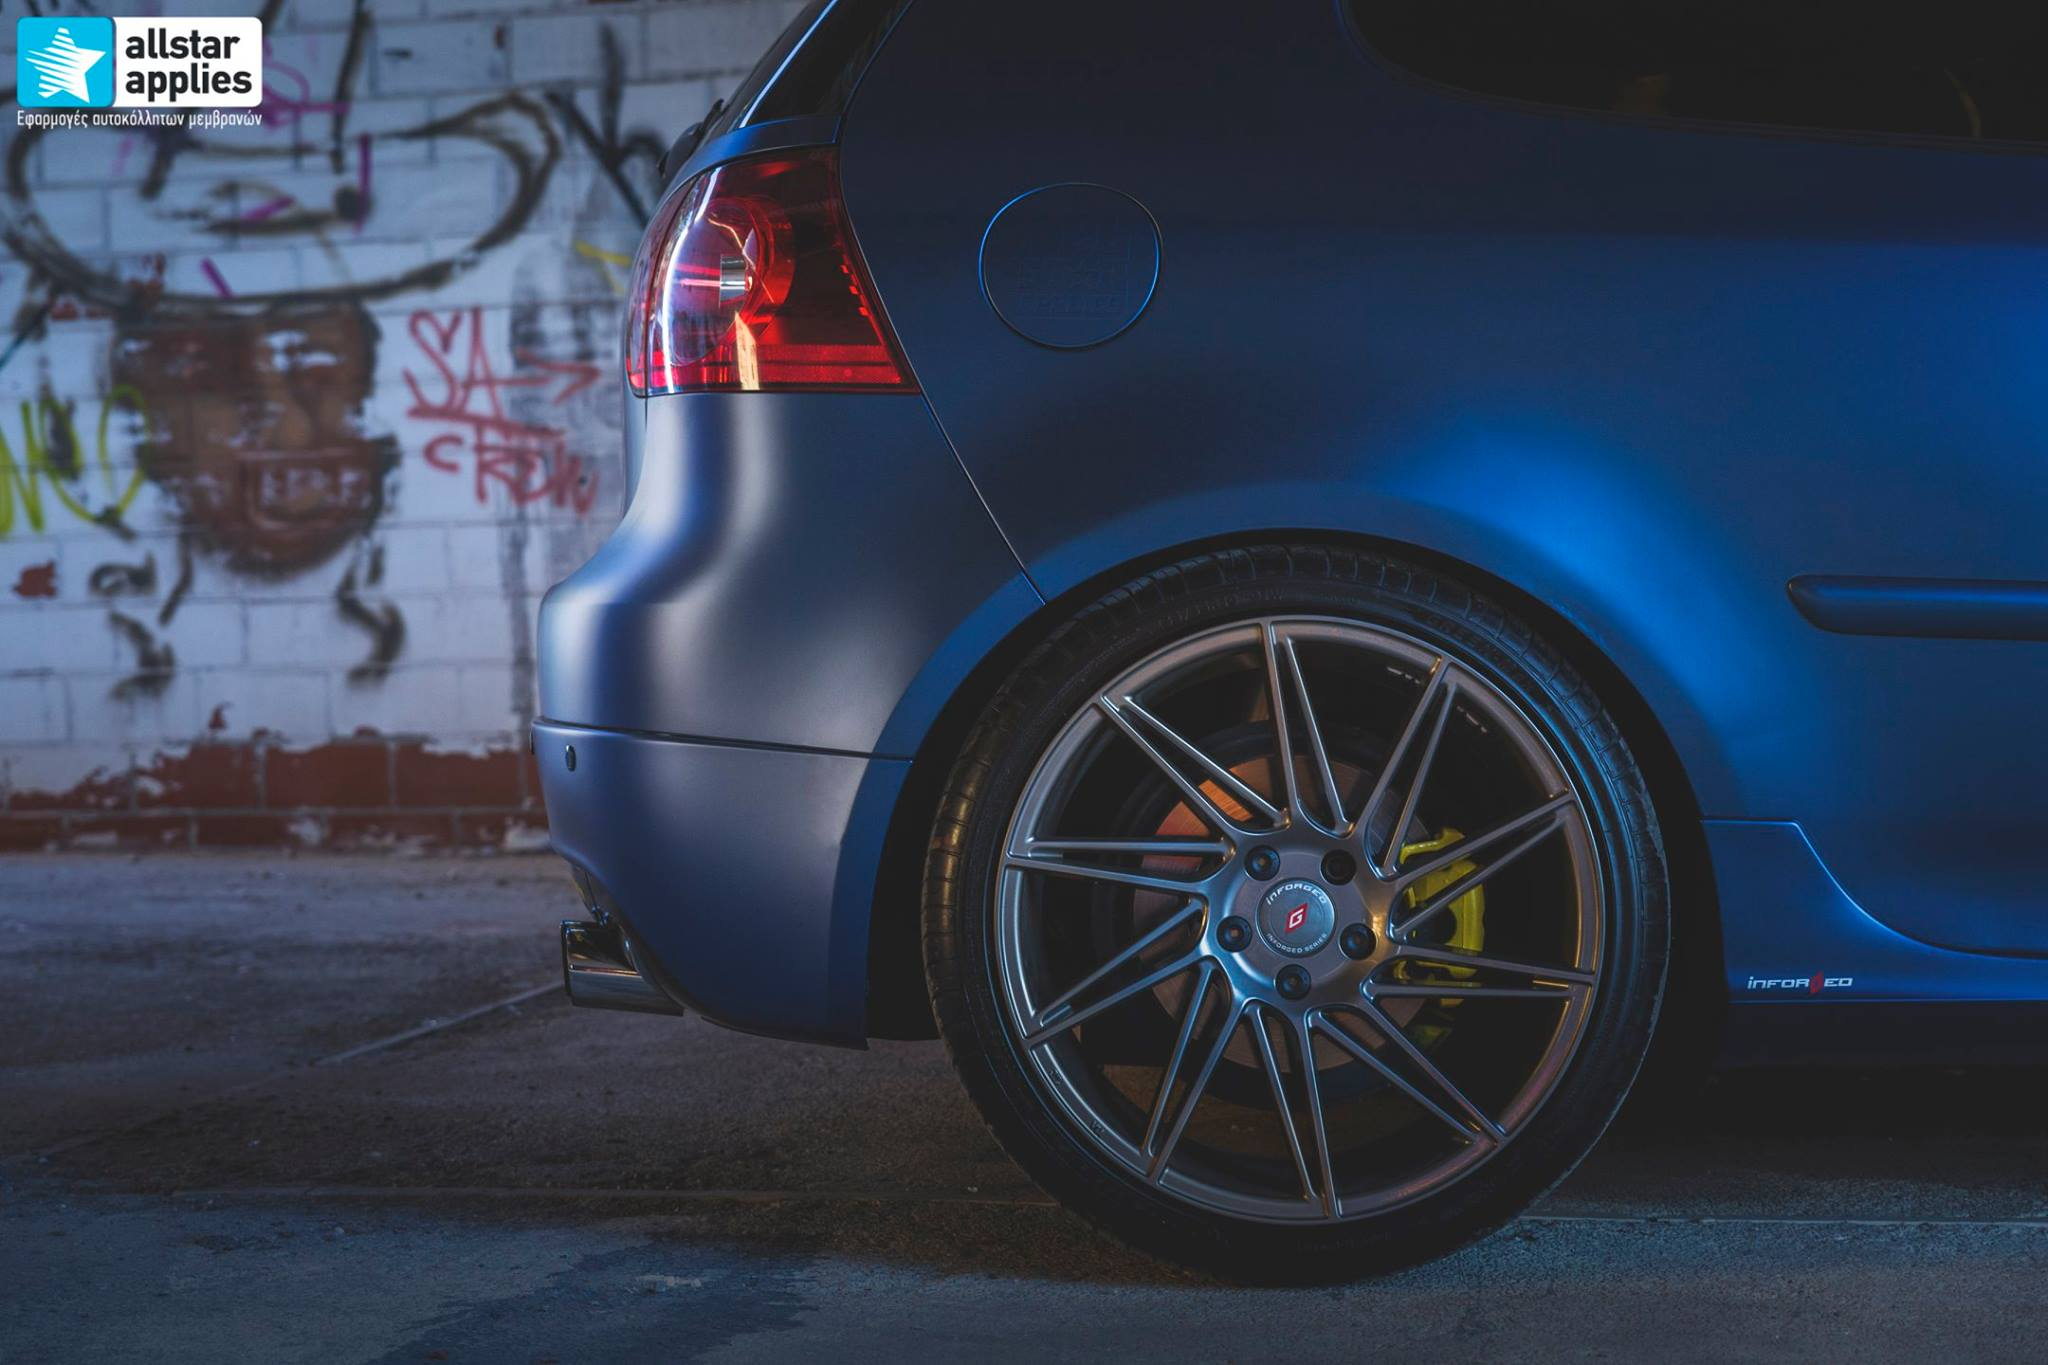 VW Golf 5 - Matt Trenton Blue (17)